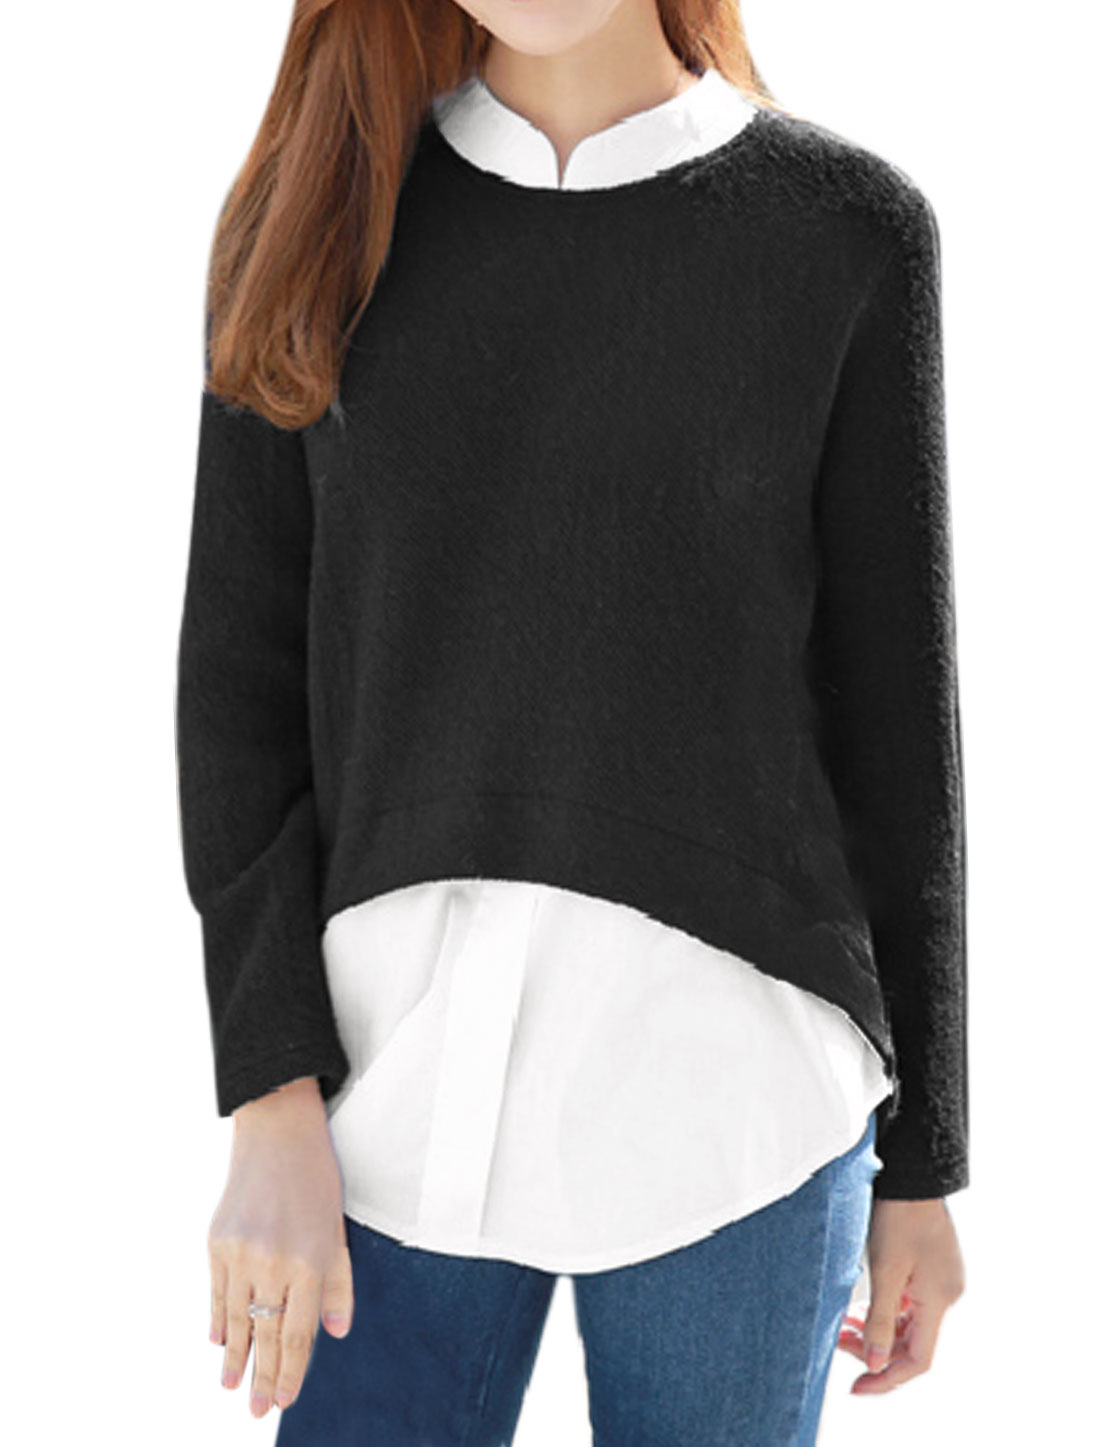 Woman Collared Long Sleeves Color Block Layered Top Black XS